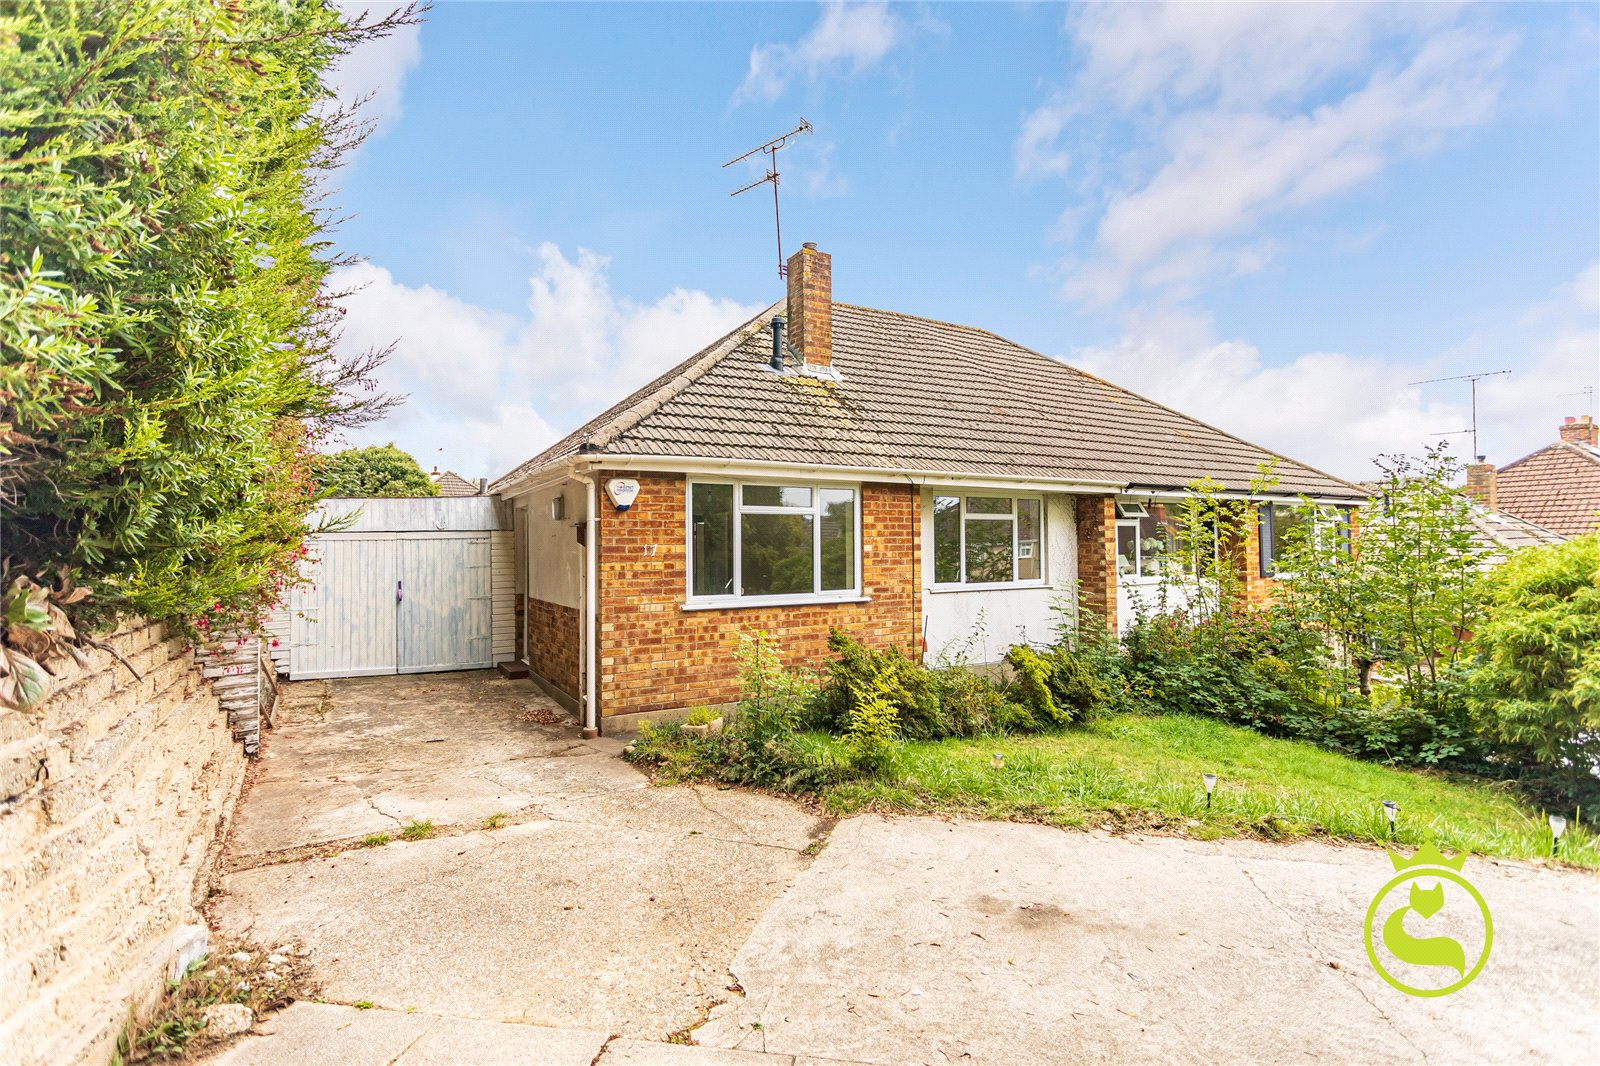 2 bed bungalow to rent in South Park Road, Poole, BH12